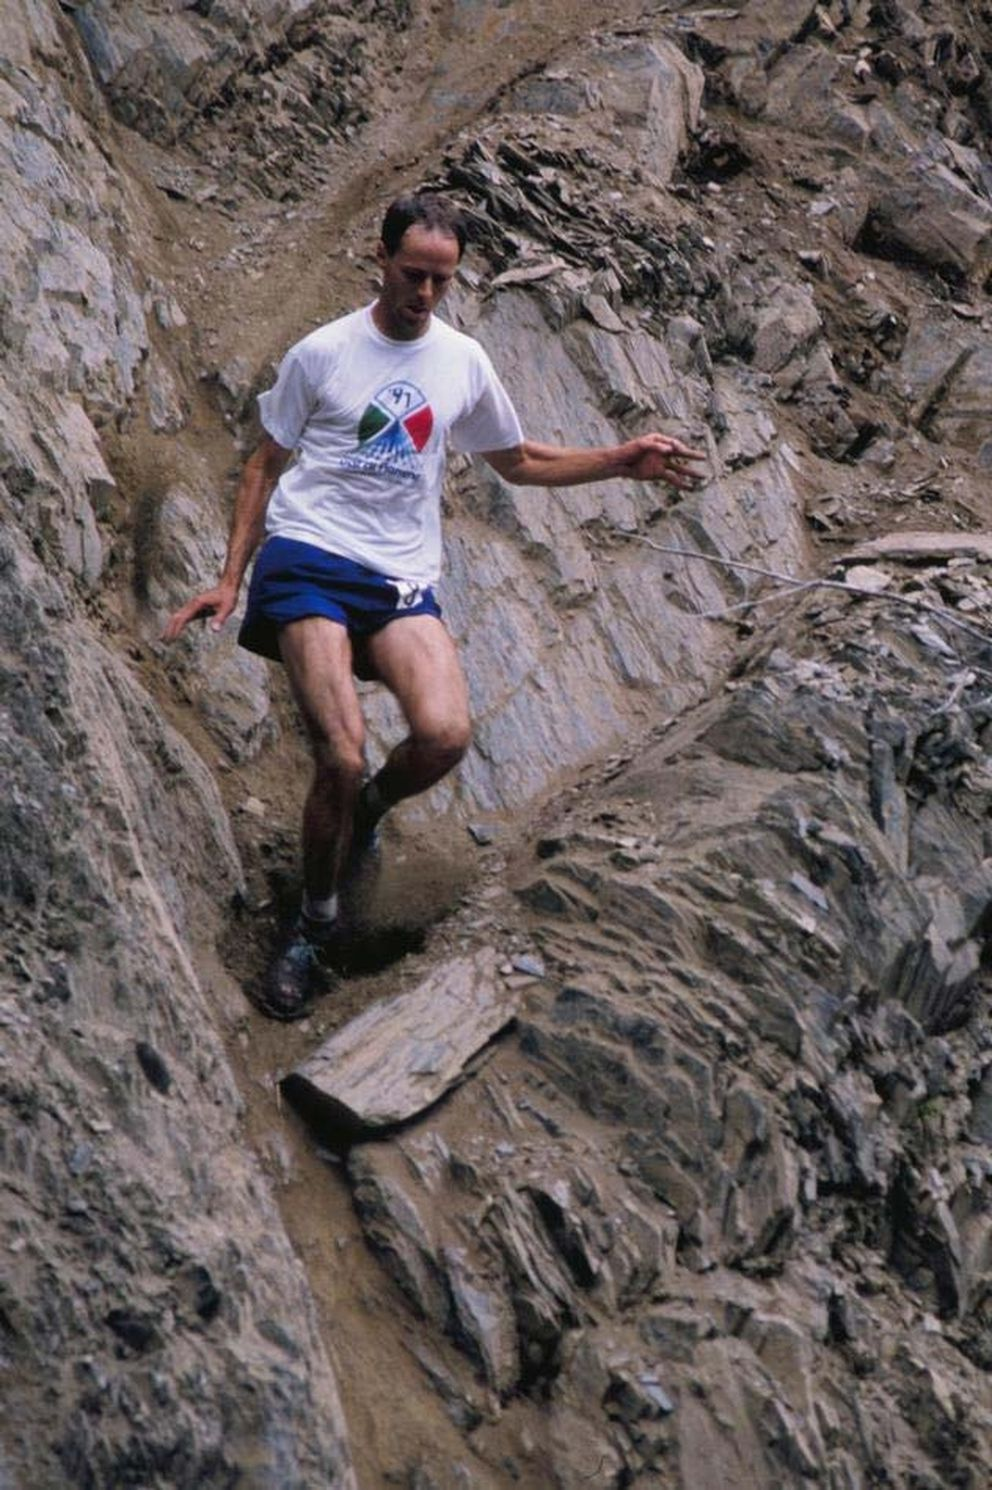 Bill Spencer descends the lower half of Mount Marathon during the 1991 race. (ADN archives)